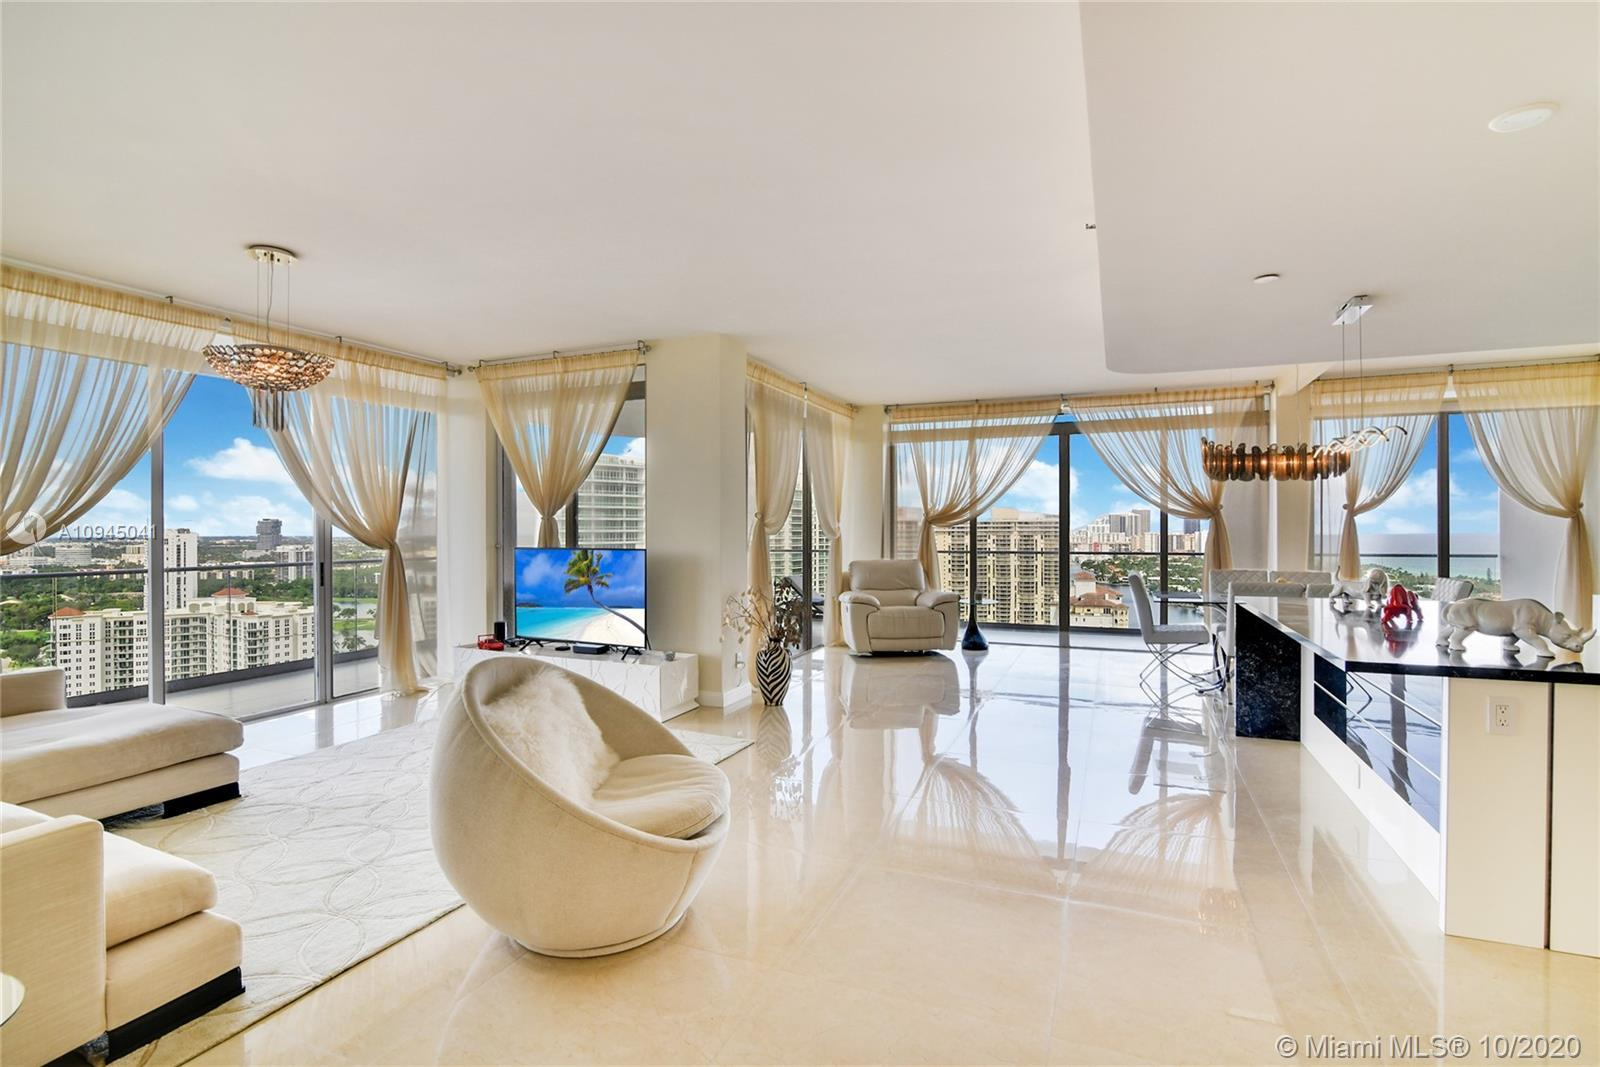 SPECTACULAR TURN-KEY PENTHOUSE WITH A LARGE WRAP AROUND TERRACE WITH PANORAMIC VIEWS OF THE OCEAN/IN